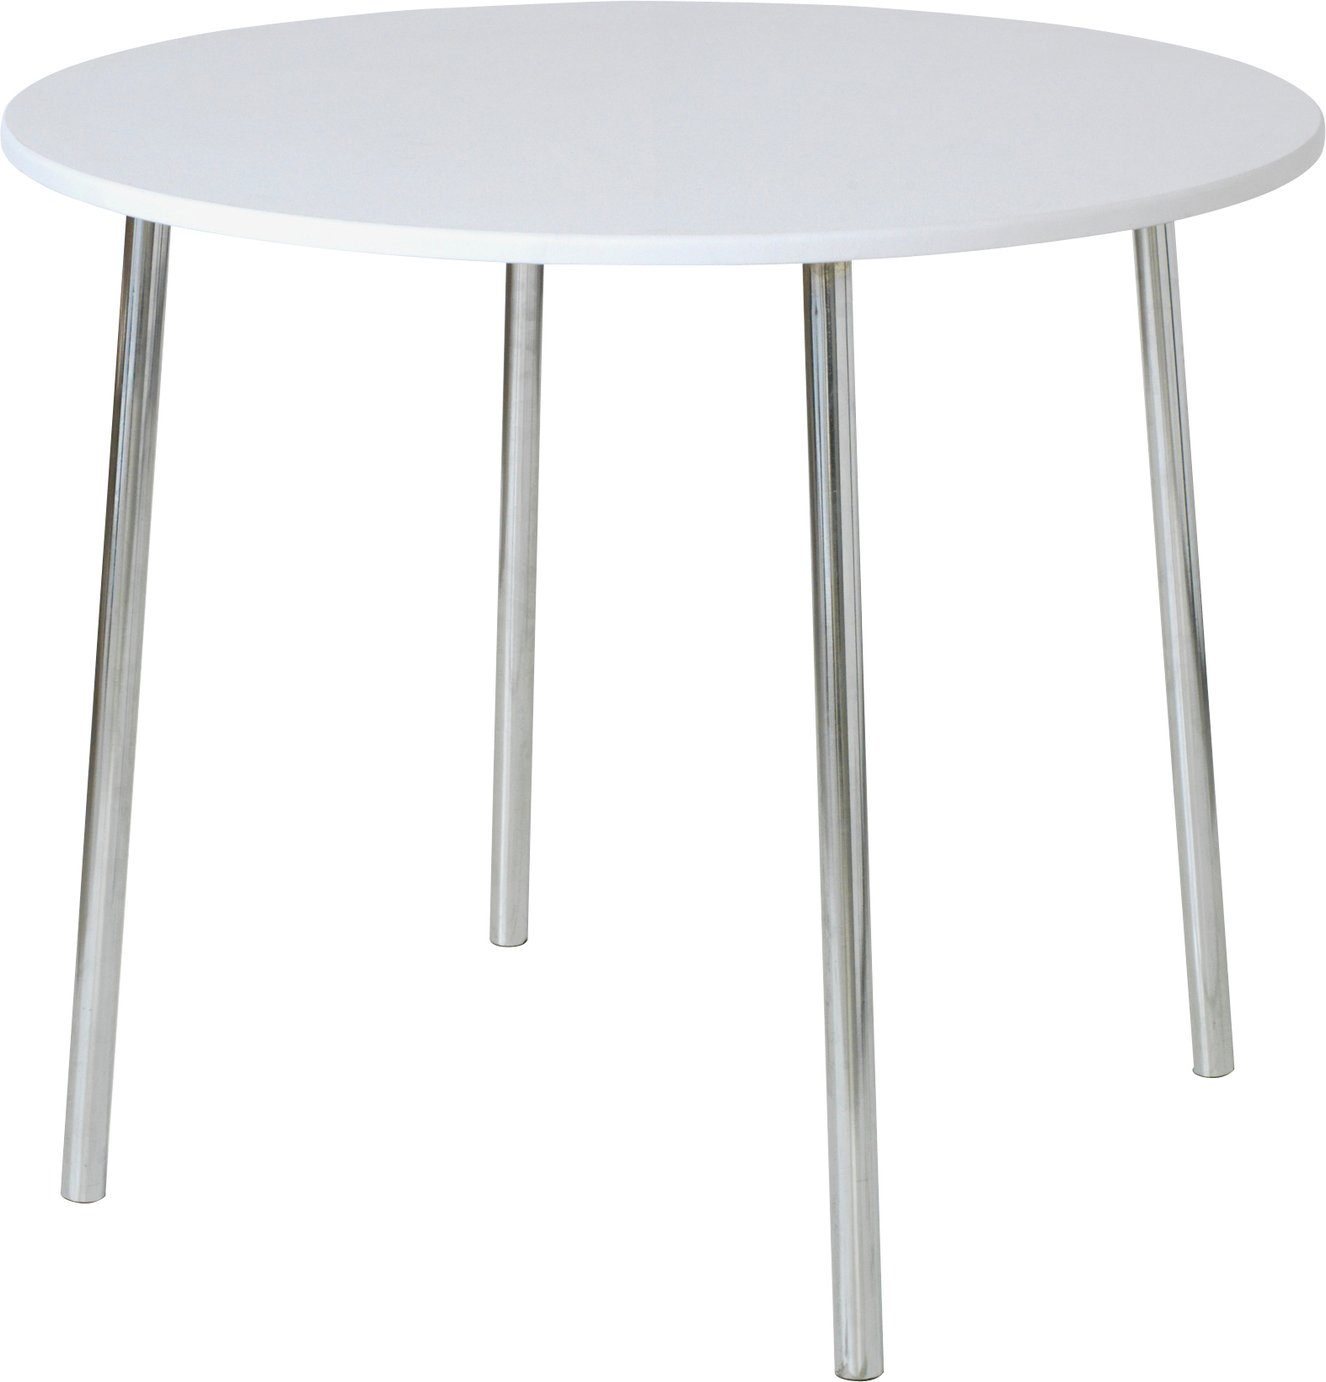 white round table. Argos Home Round Wood Effect 2 Seater Dining Table - White